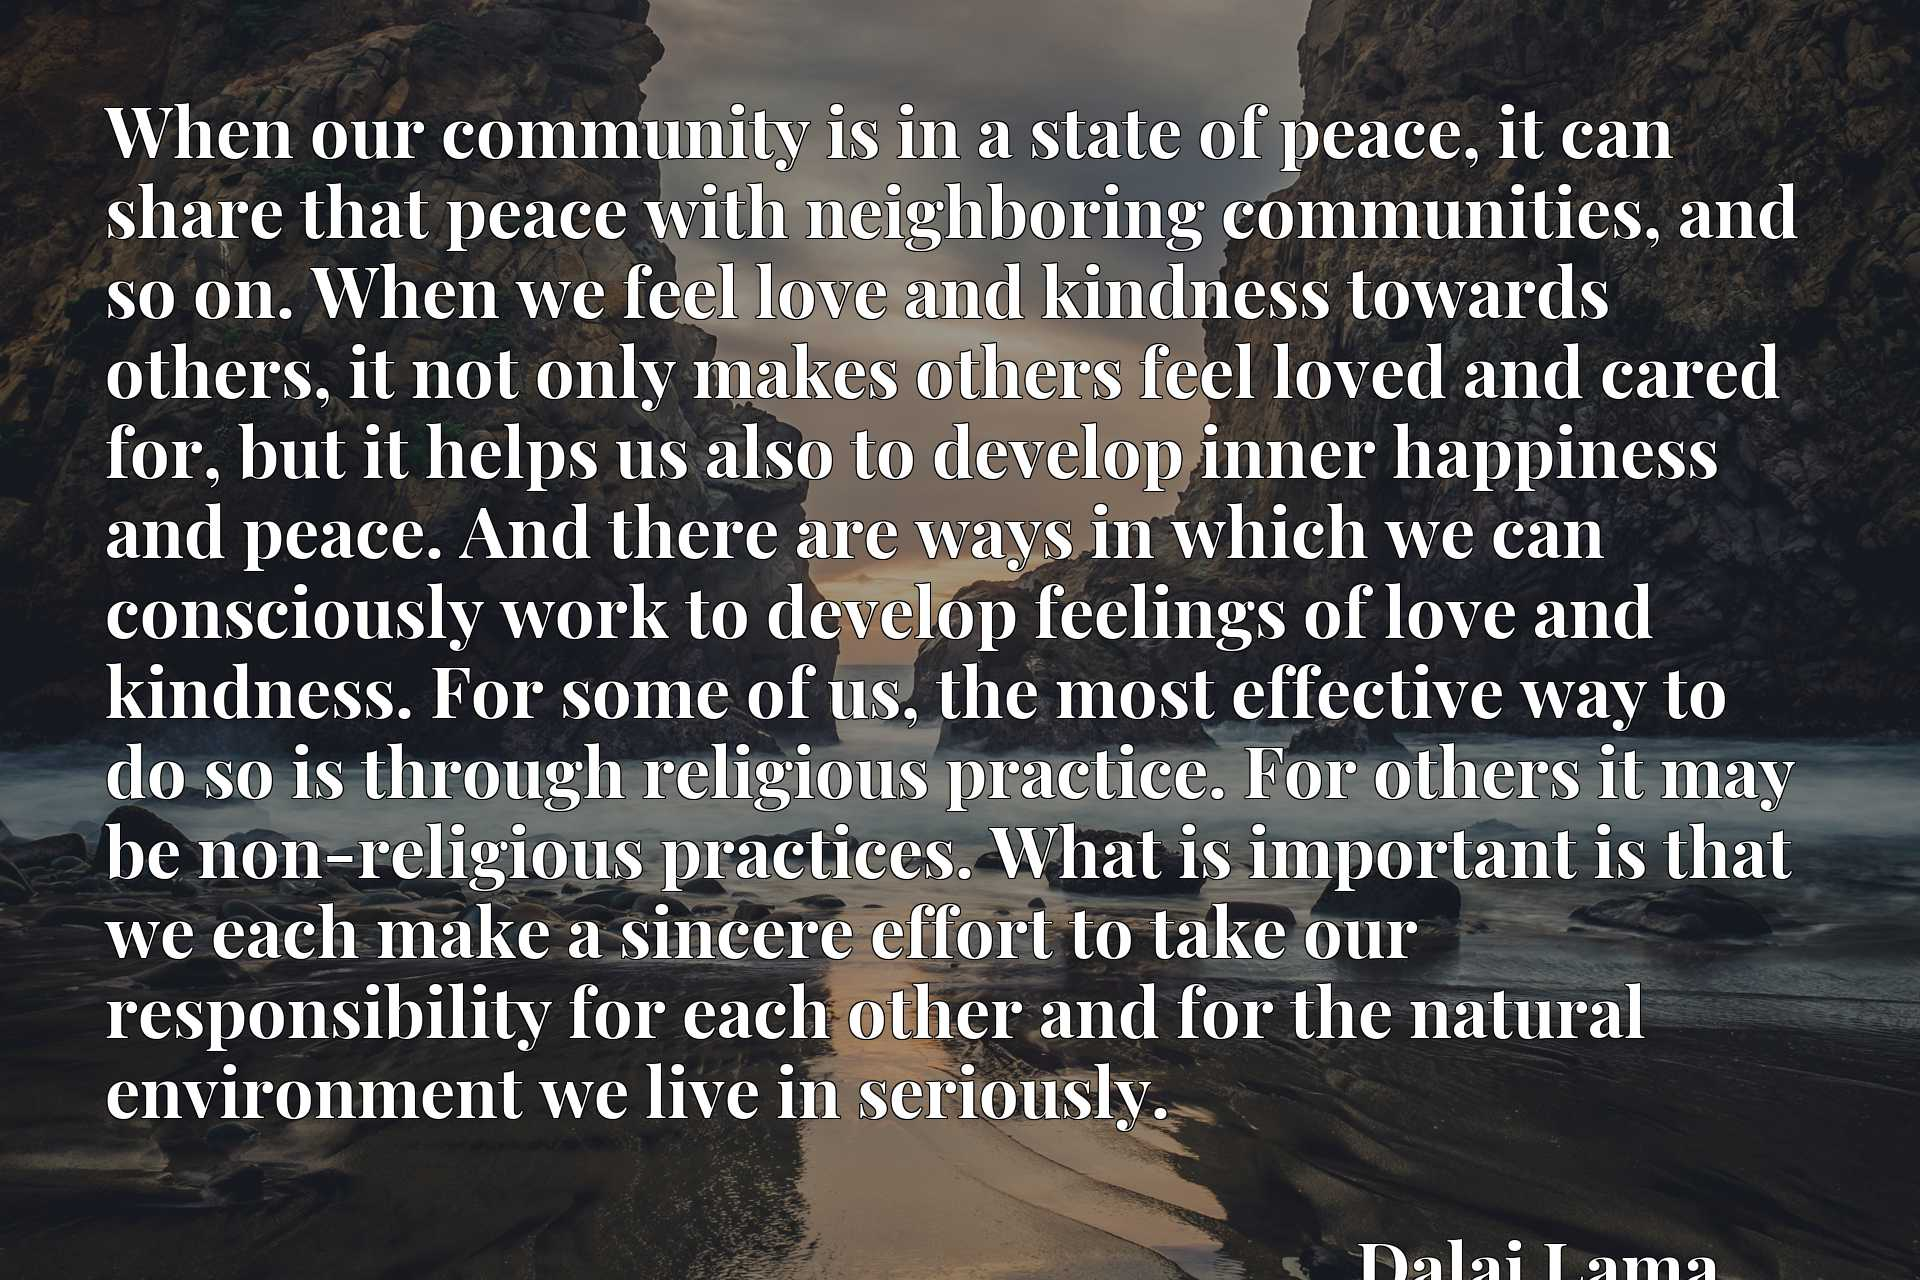 When our community is in a state of peace, it can share that peace with neighboring communities, and so on. When we feel love and kindness towards others, it not only makes others feel loved and cared for, but it helps us also to develop inner happiness and peace. And there are ways in which we can consciously work to develop feelings of love and kindness. For some of us, the most effective way to do so is through religious practice. For others it may be non-religious practices. What is important is that we each make a sincere effort to take our responsibility for each other and for the natural environment we live in seriously.